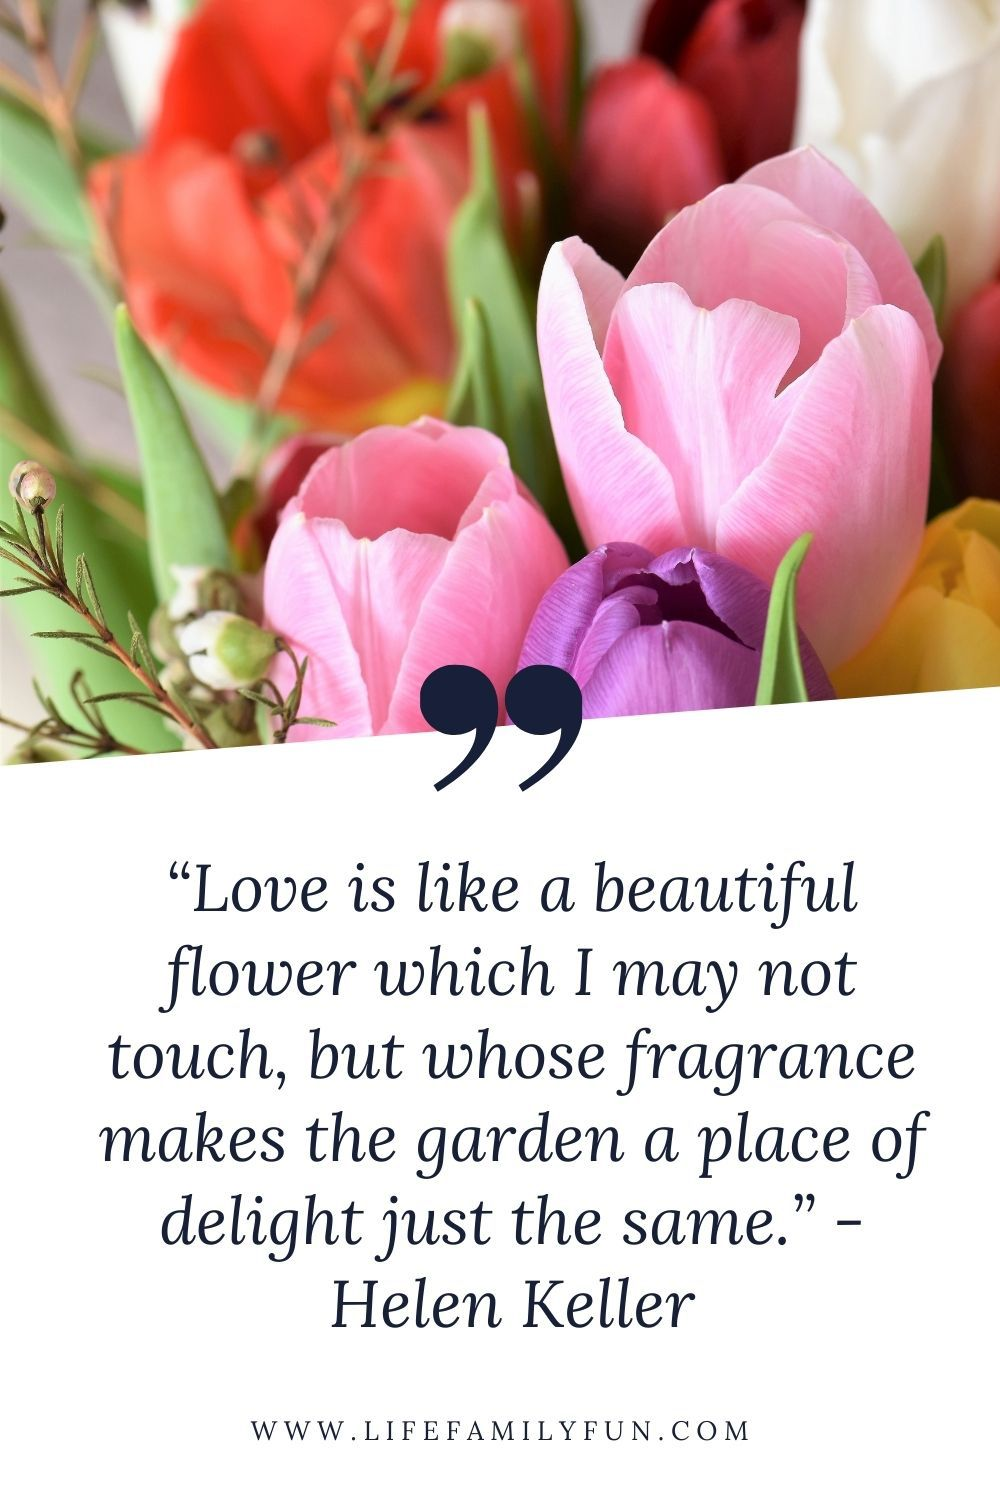 Marriage Quote by Helen Keller